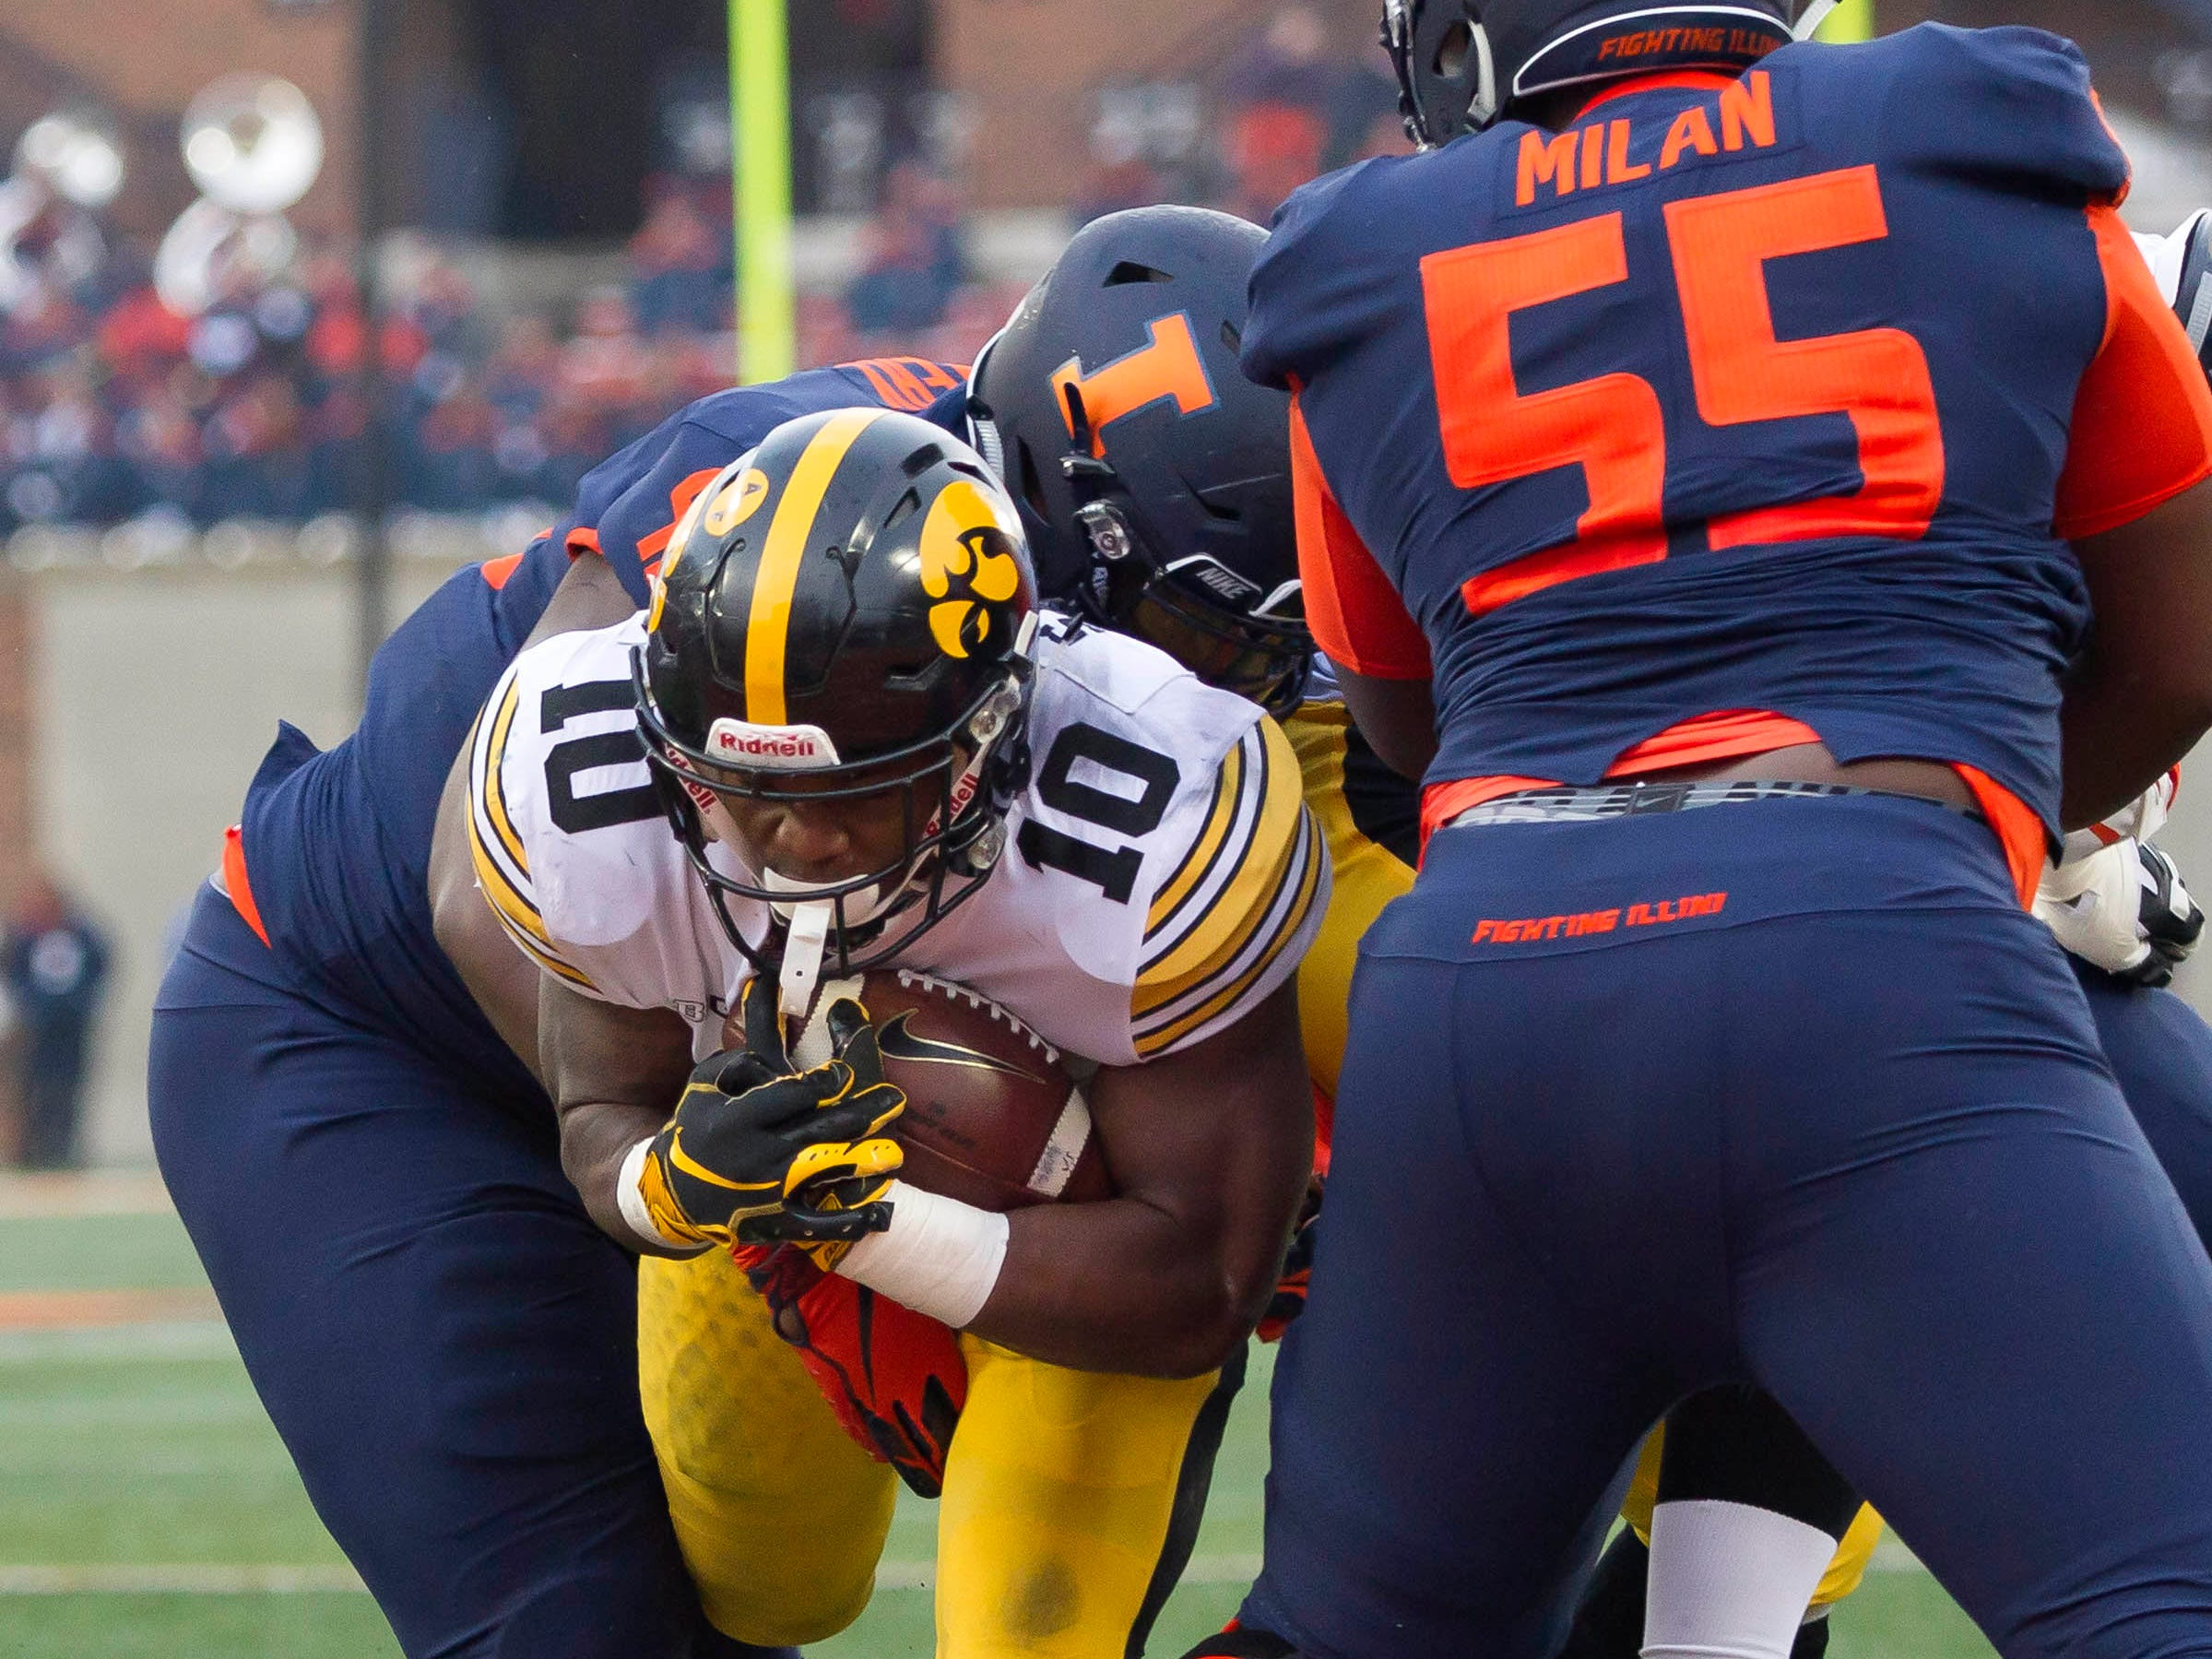 Nov 17, 2018; Champaign, IL, USA; Iowa Hawkeyes running back Mekhi Sargent (10) scores a touchdown during the second quarter against the Illinois Fighting Illini at Memorial Stadium.